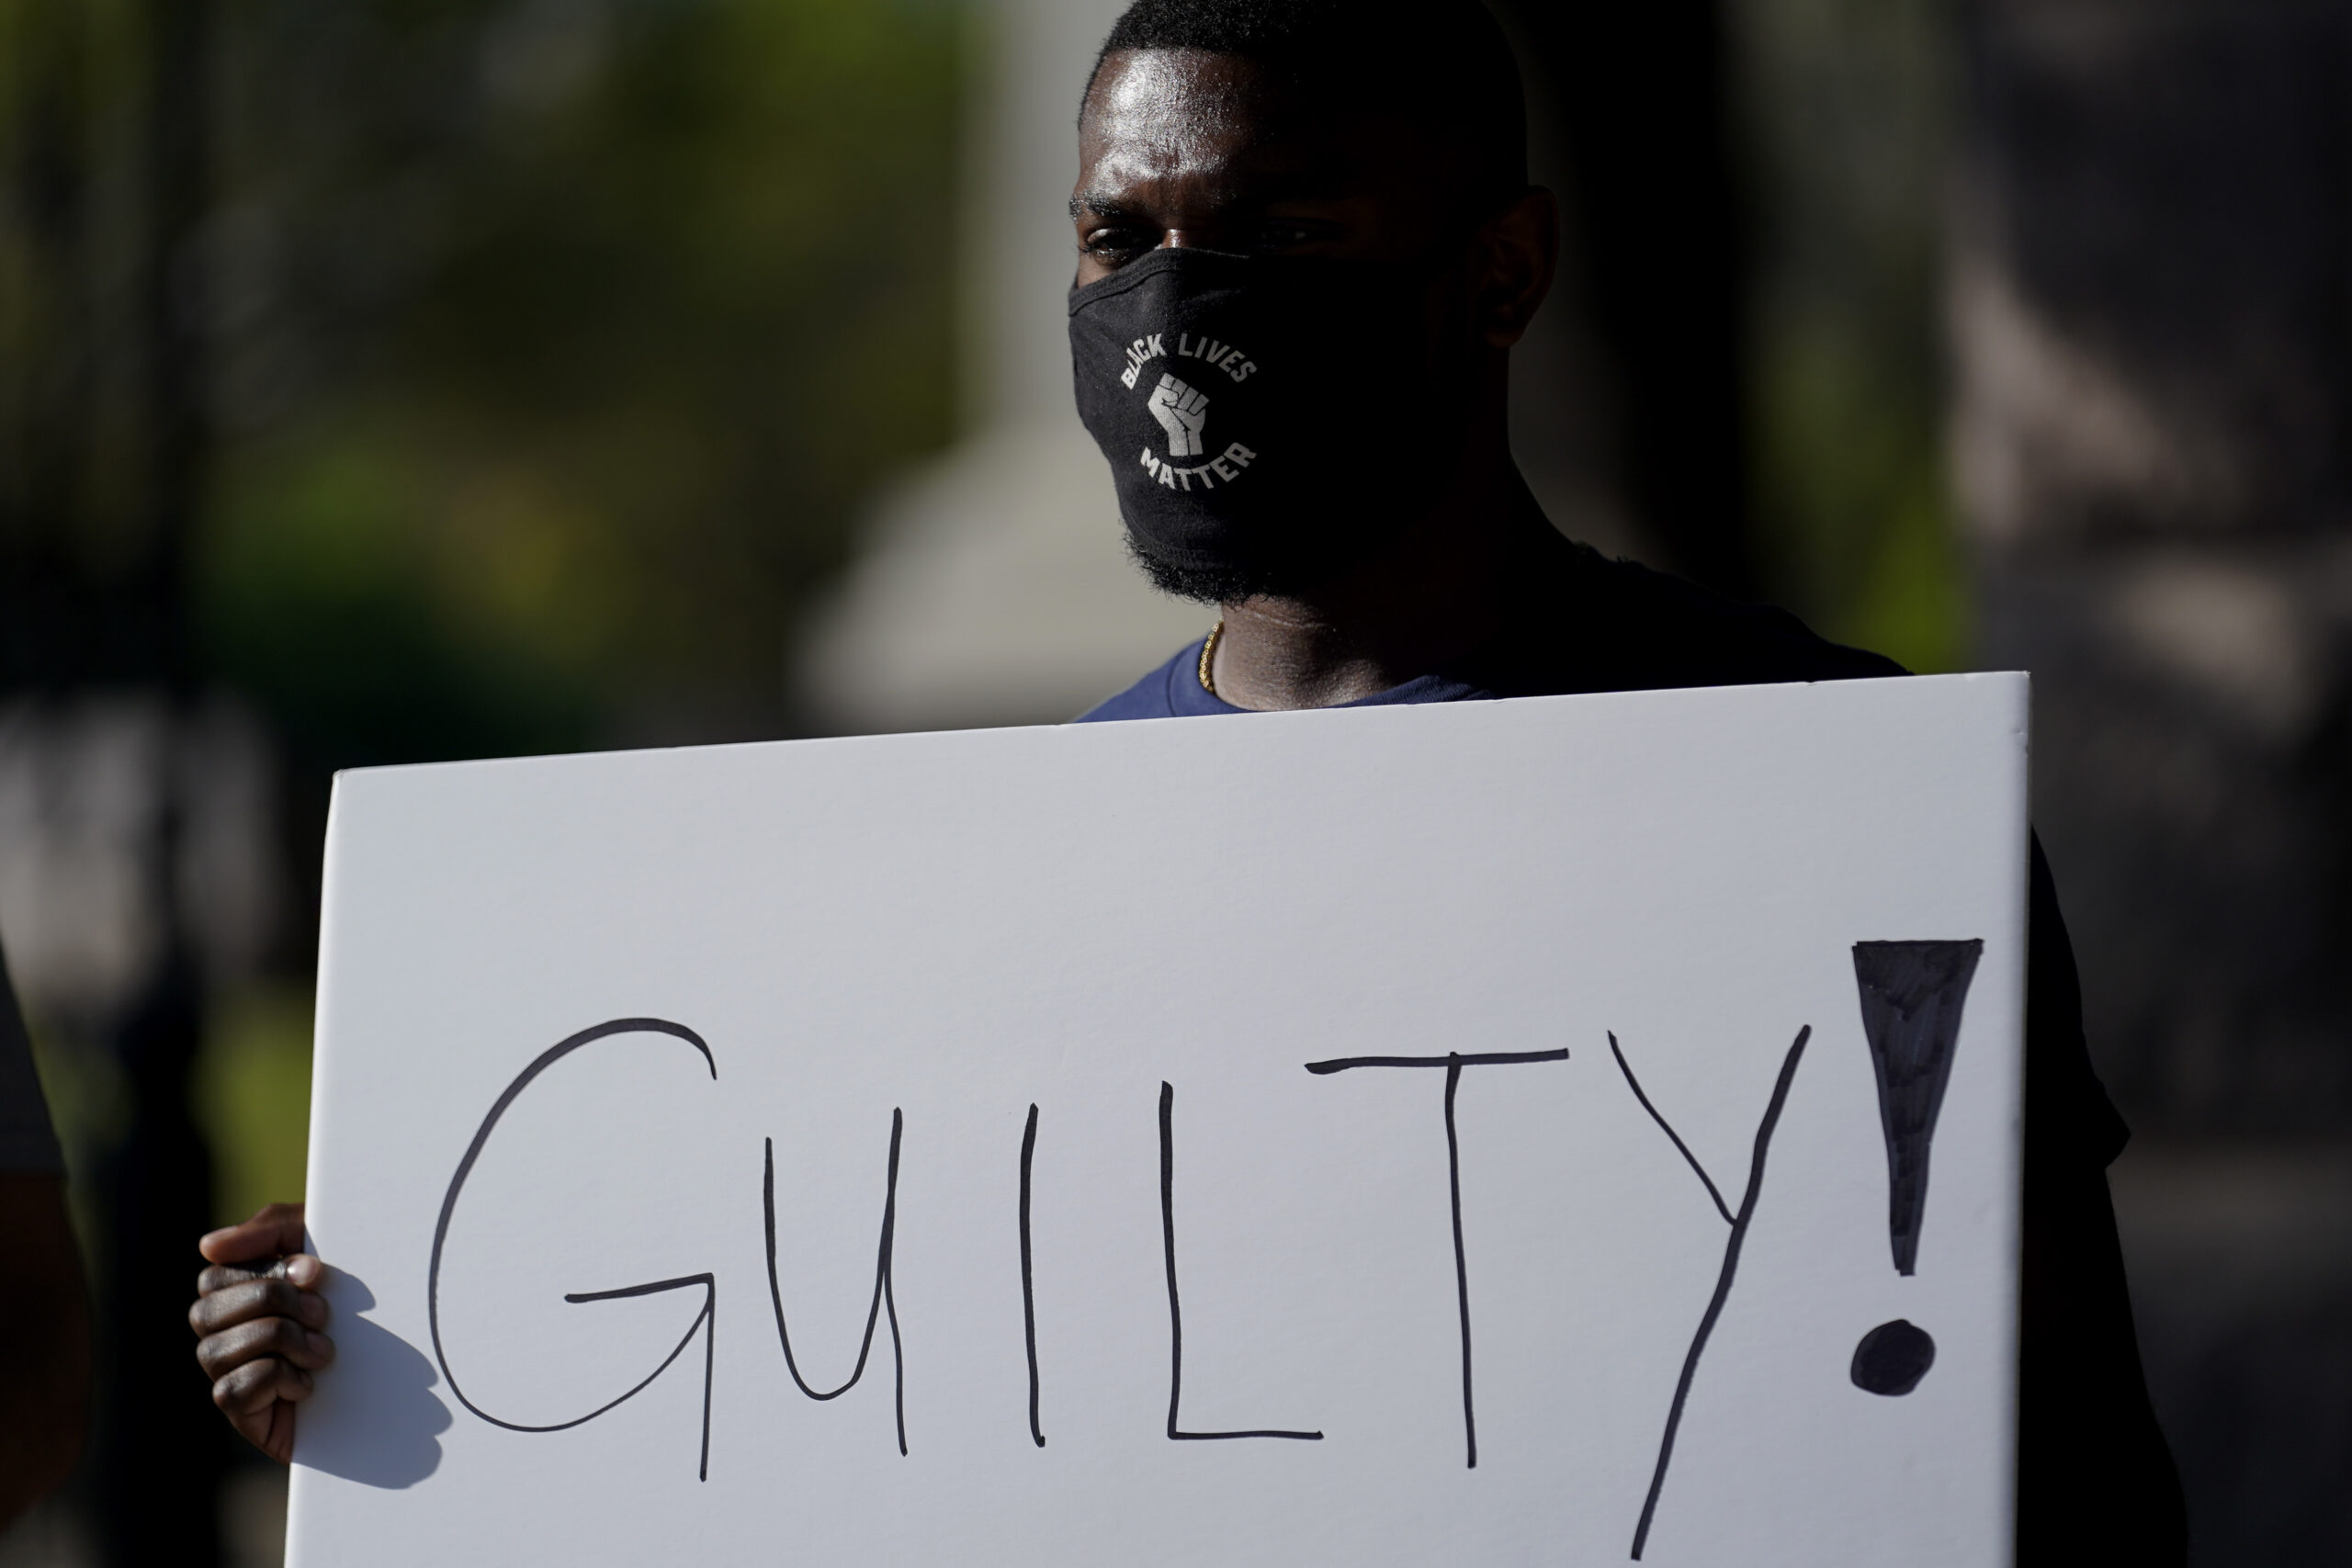 """Mike James stands with a sign reading """"Guilty"""" at the Texas Capitol, Tuesday, April 20, 2021, in Austin, Texas, after the guilty verdict in the murder trial of former Minneapolis police Officer Derek Chauvin was announced in the death of George Floyd. (AP Photo/Eric Gay)"""